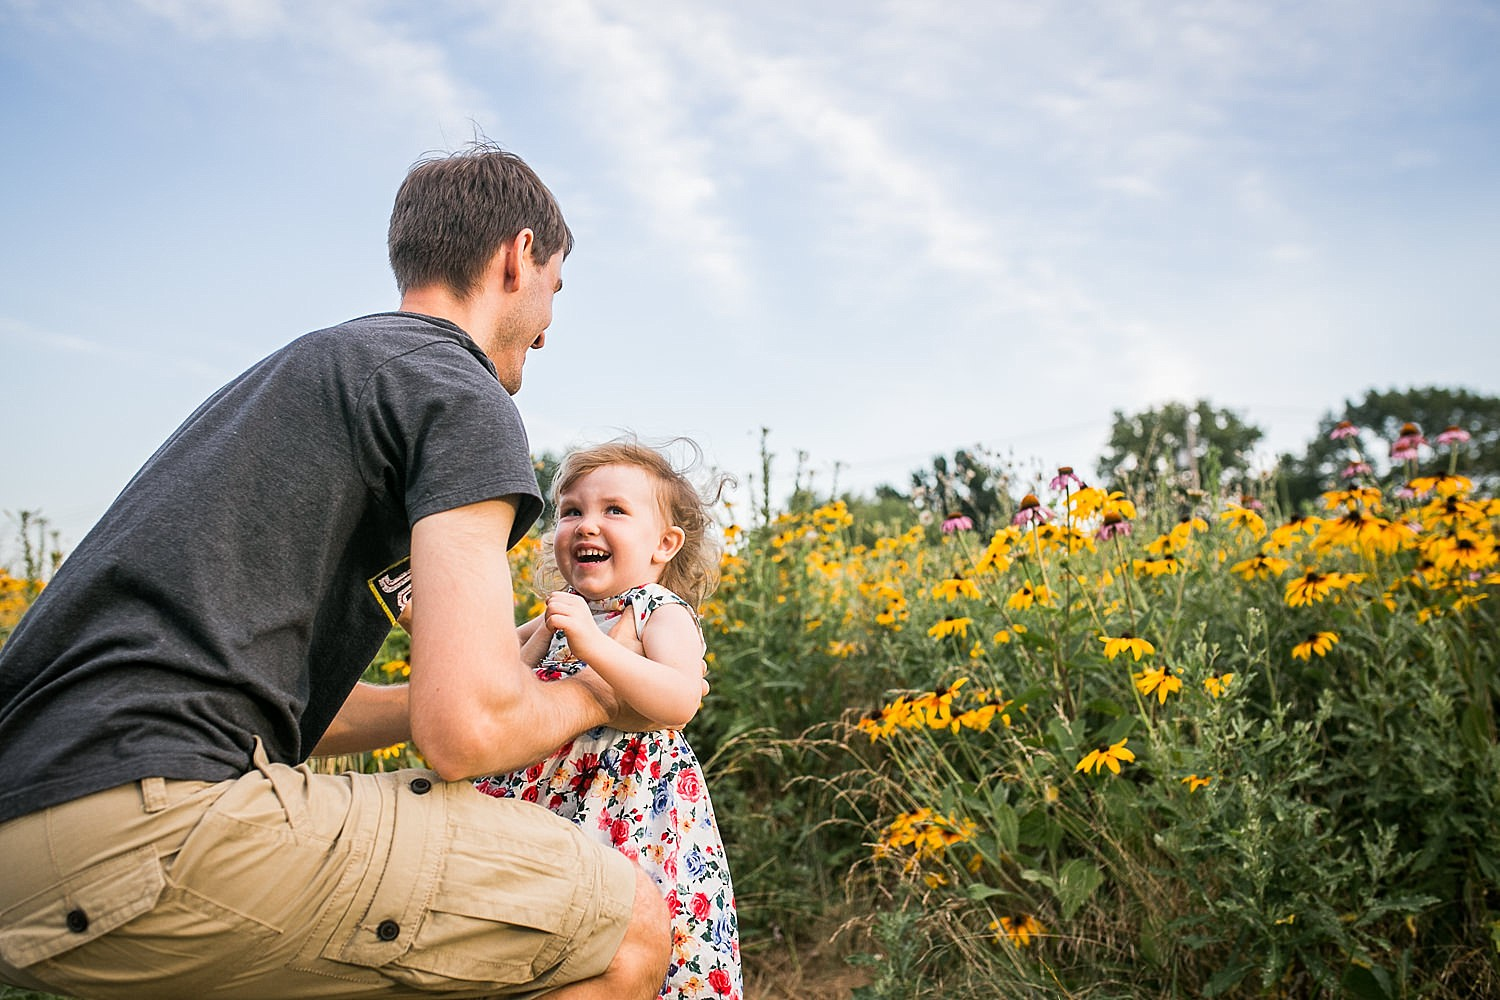 Lititz_family_photographer_wildflower_field-10.jpg